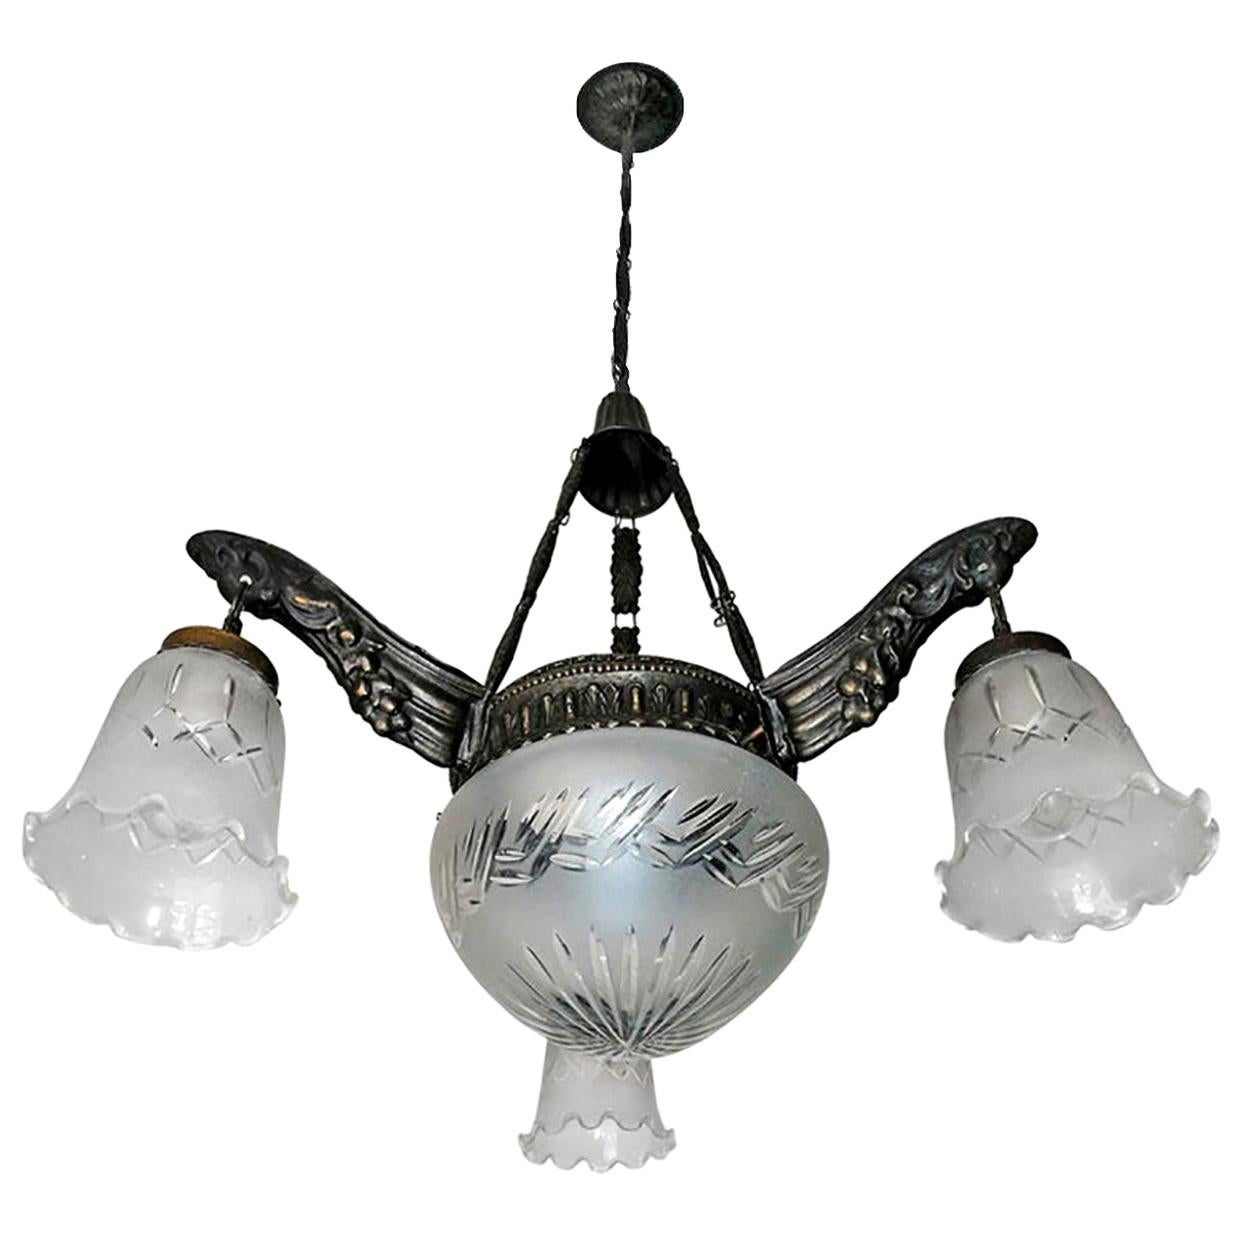 Art Deco & Art Nouveau in Degué Style Cut Glass 4-Light Chandelier, circa 1920